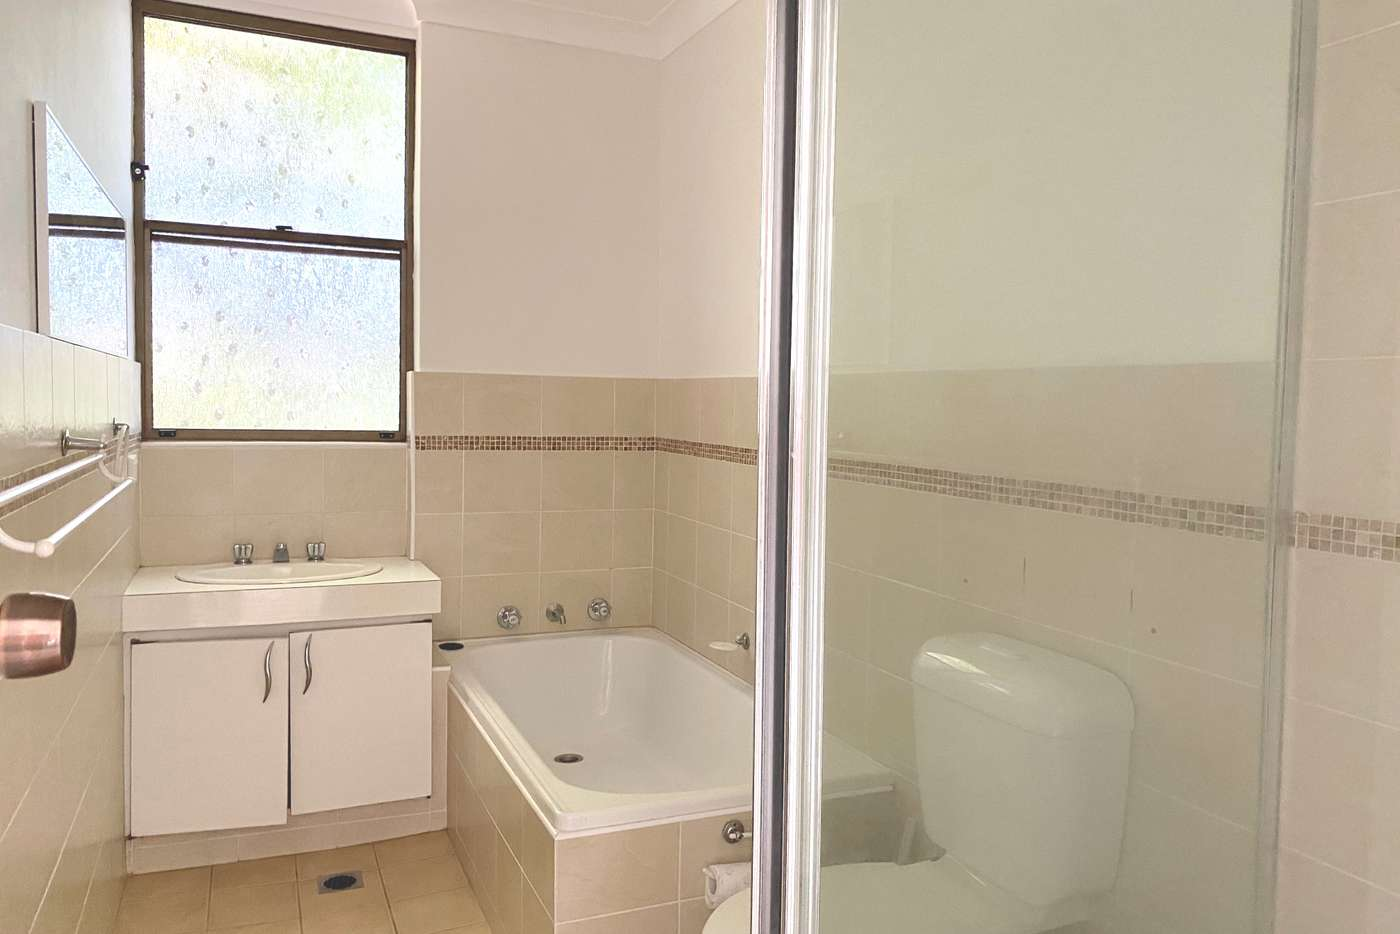 Sixth view of Homely unit listing, 1/38 Smith Street, Charlestown NSW 2290